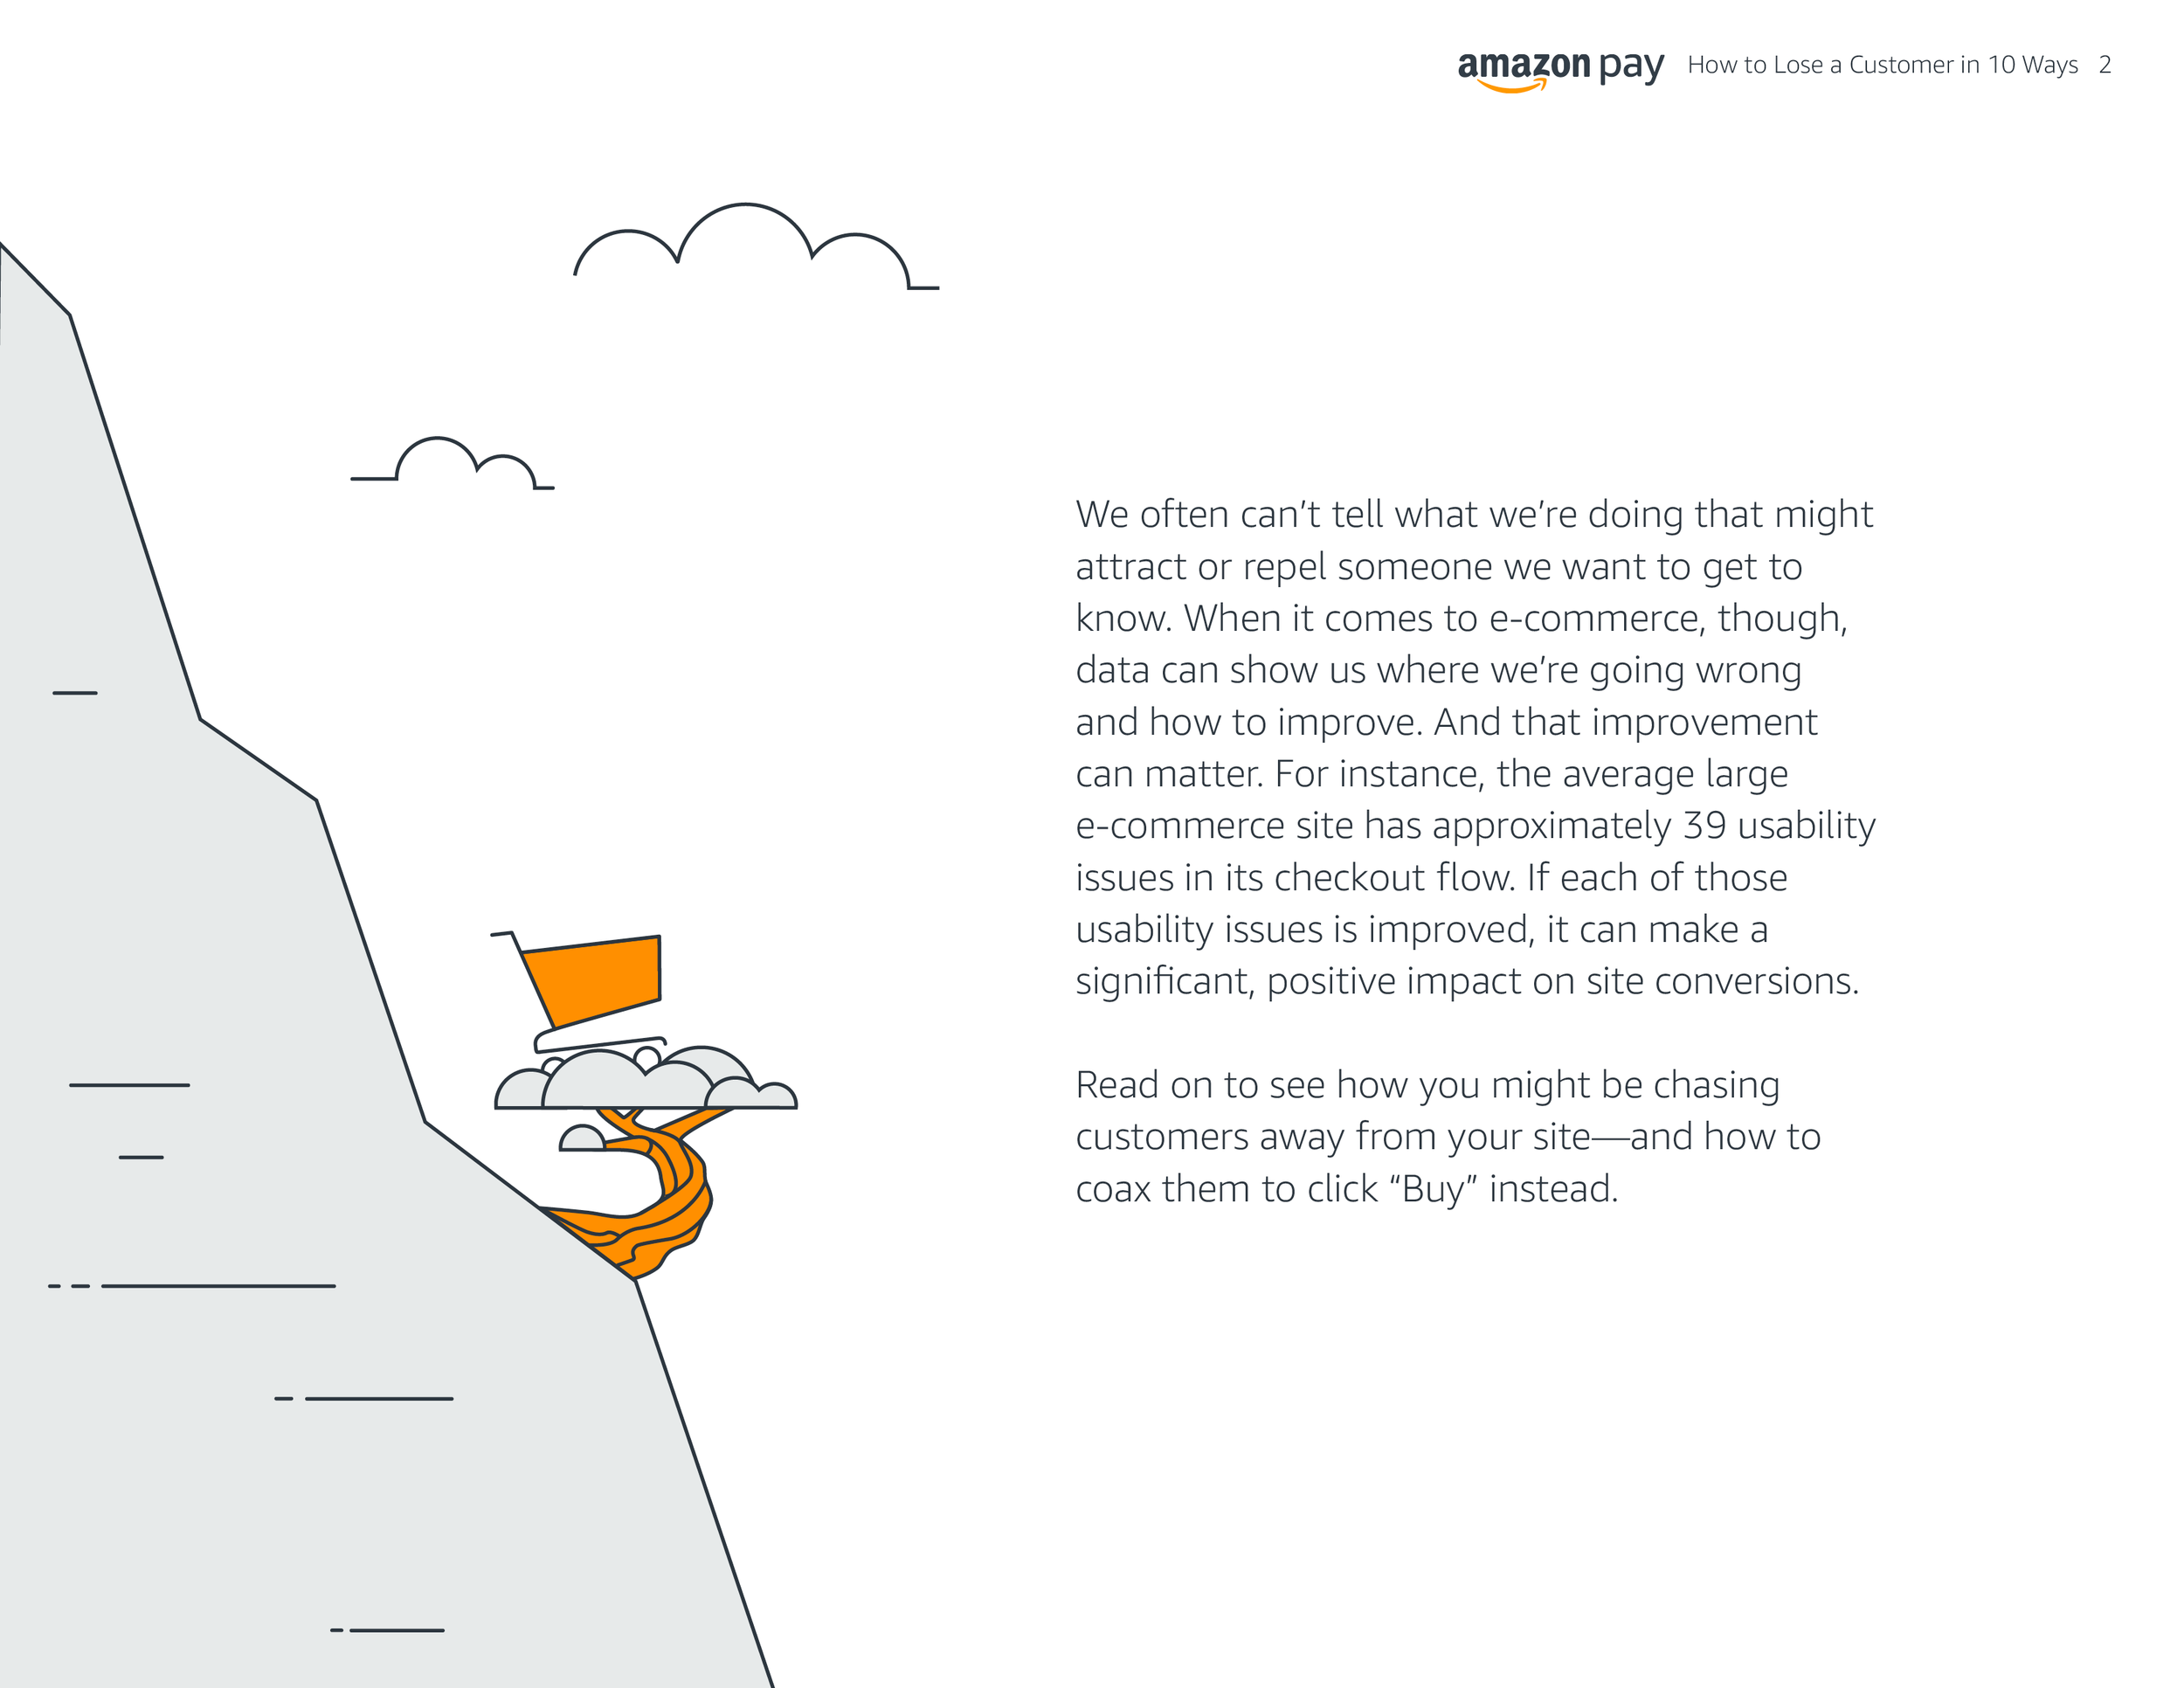 amazon-pay-2.png